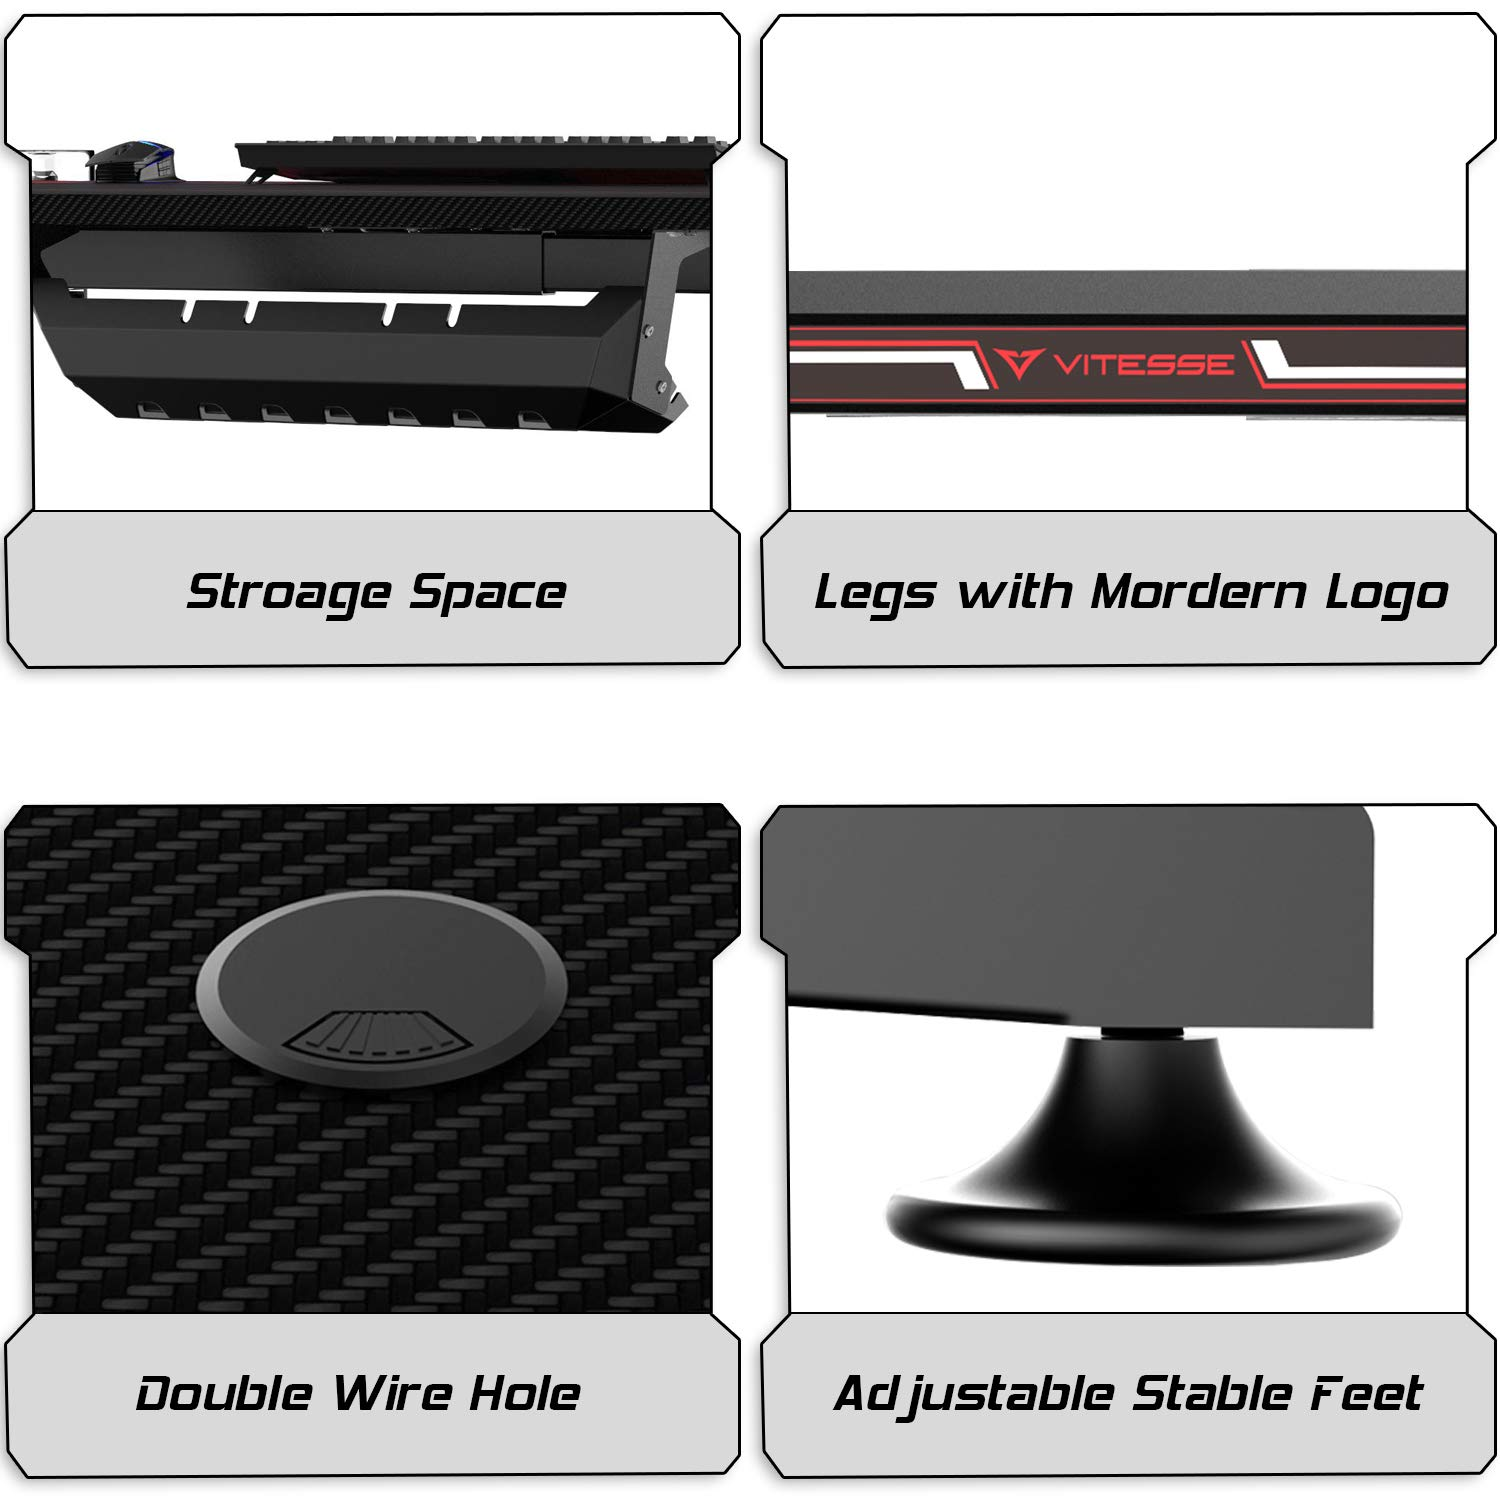 Vitesse 47 inches Gaming Desk Racing Style Computer Table with Free Mouse pad, T-Shaped Professional Gamer Workstation PC Office Desk with Cup Holder & Headphone Hook by Waleaf (Image #6)